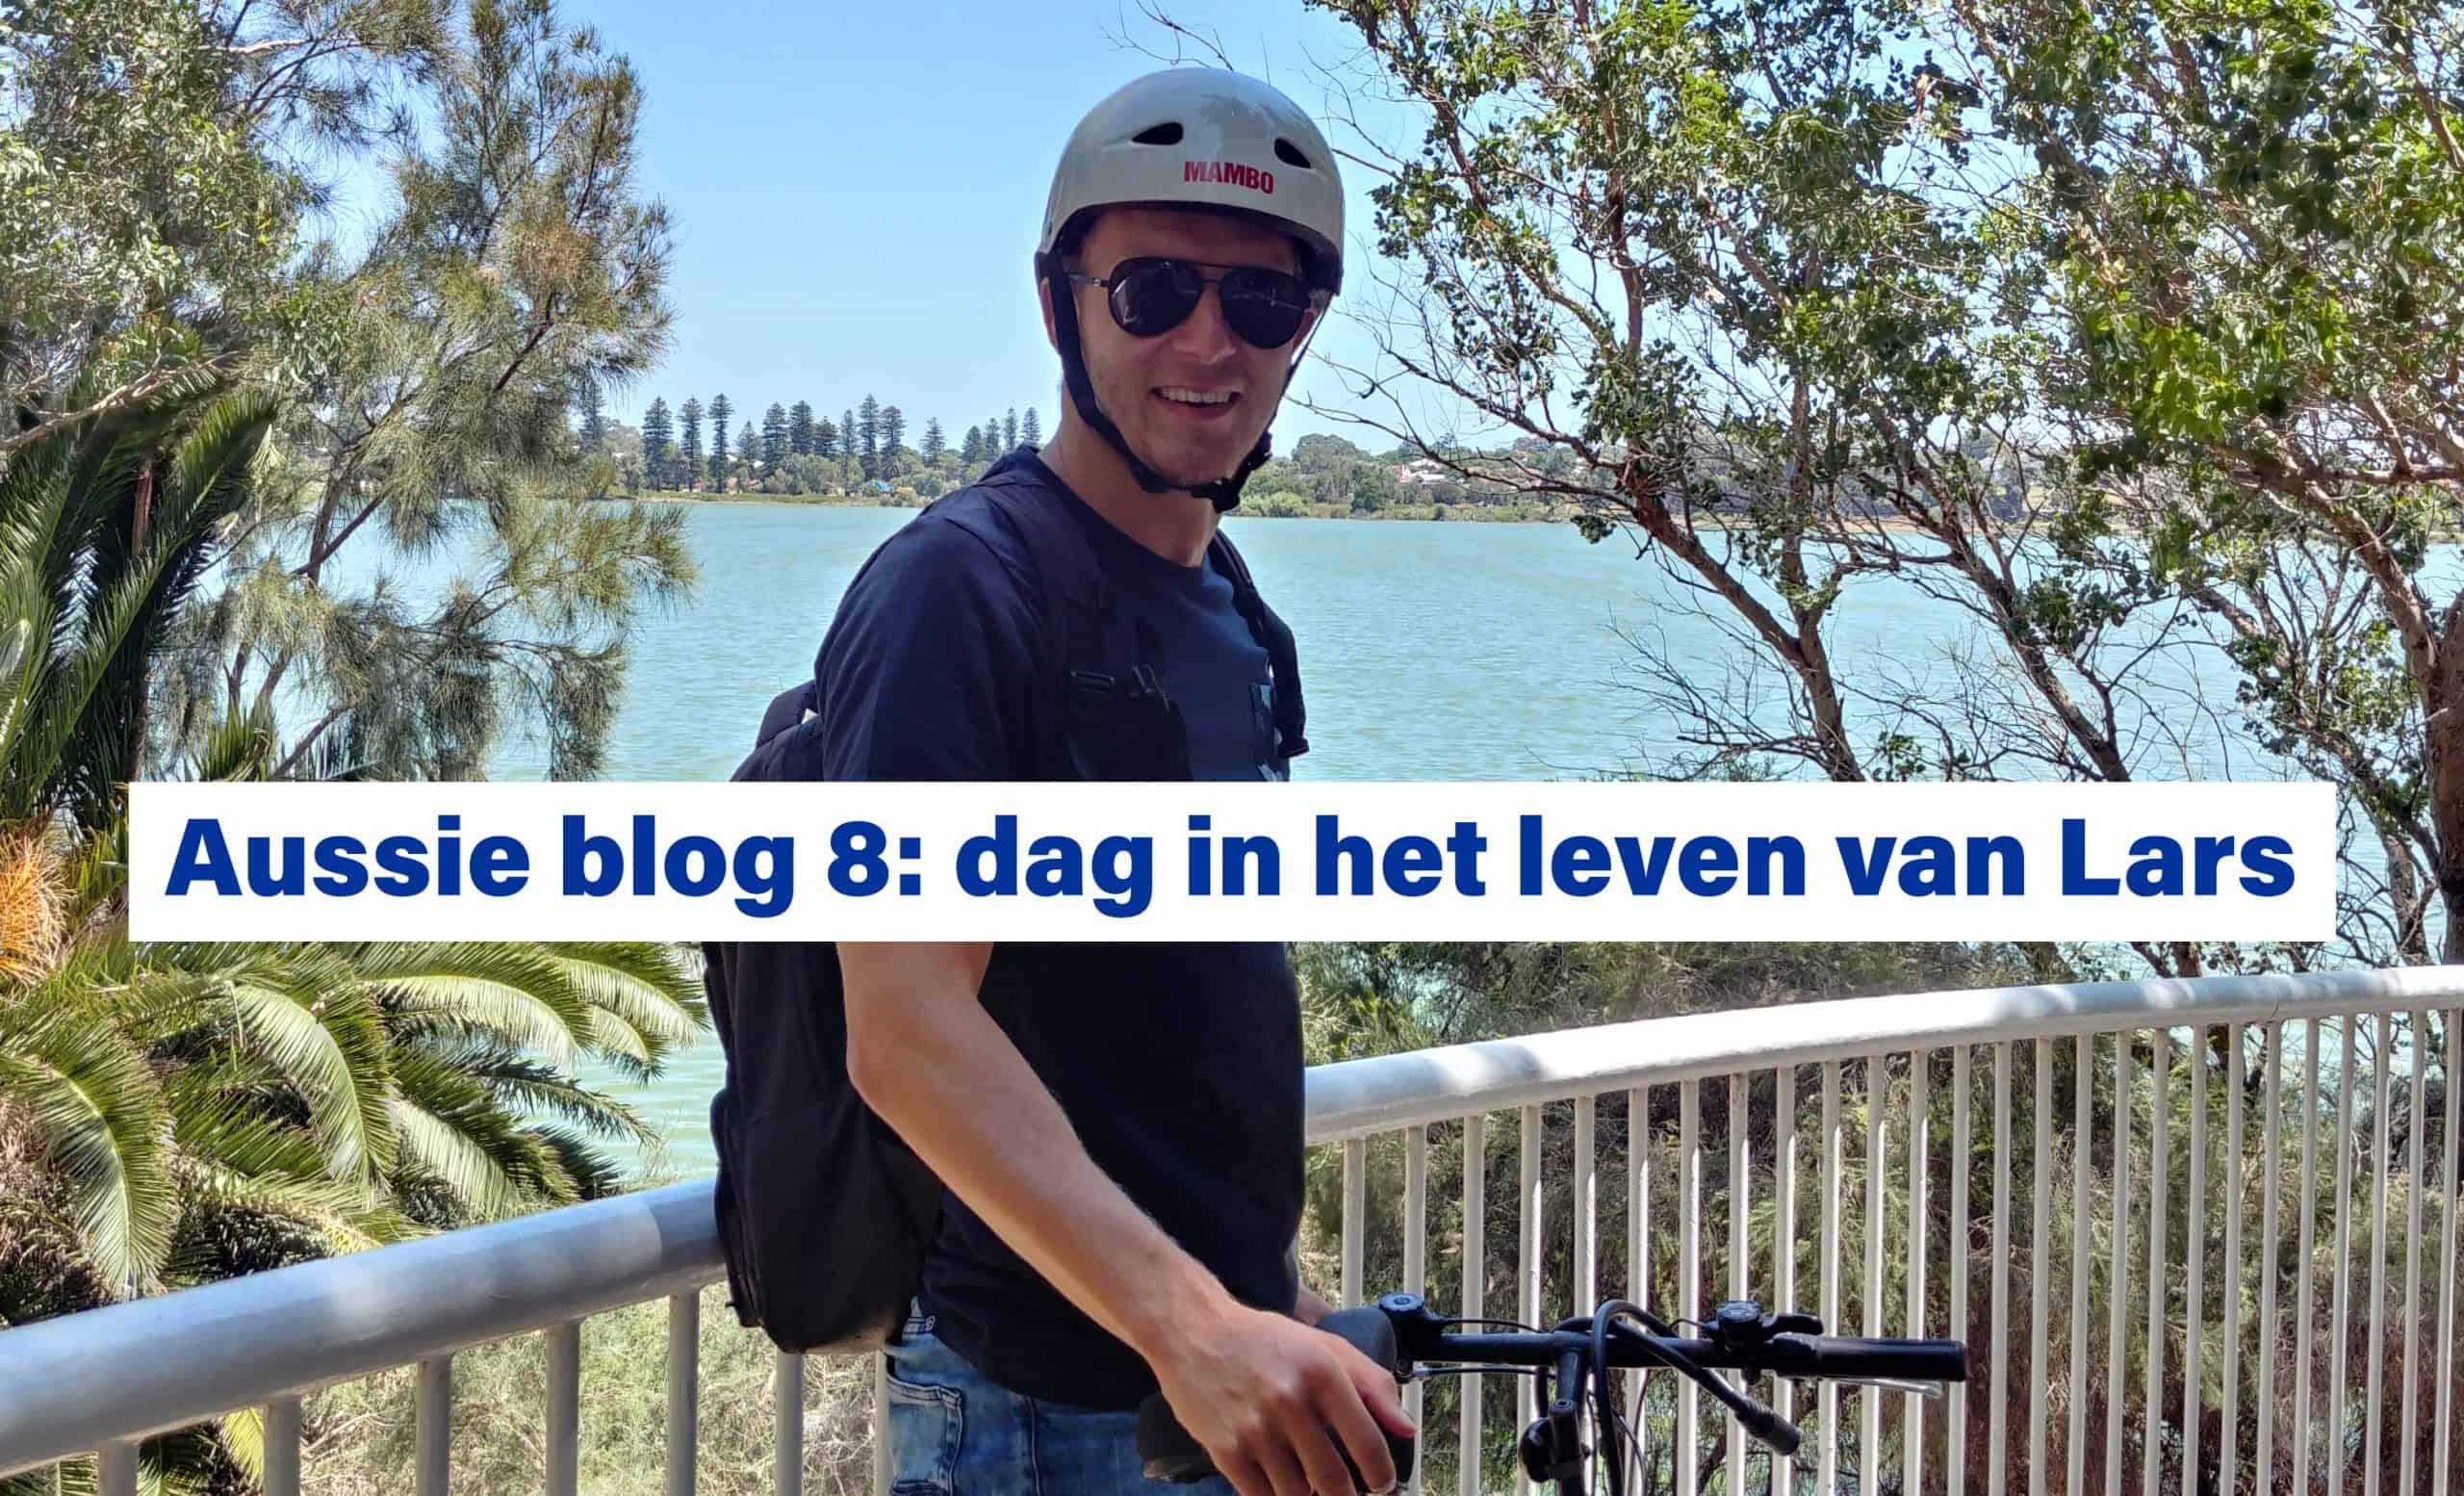 Aussie blog 8: dag in het leven van Lars - openwaterzwemmer Lars Bottelier is in Australië voor een trainingsstage - Lars geeft ook clinics, presentaties en meer over openwaterzwemmen, trainingen, topsport en is motivational speaker